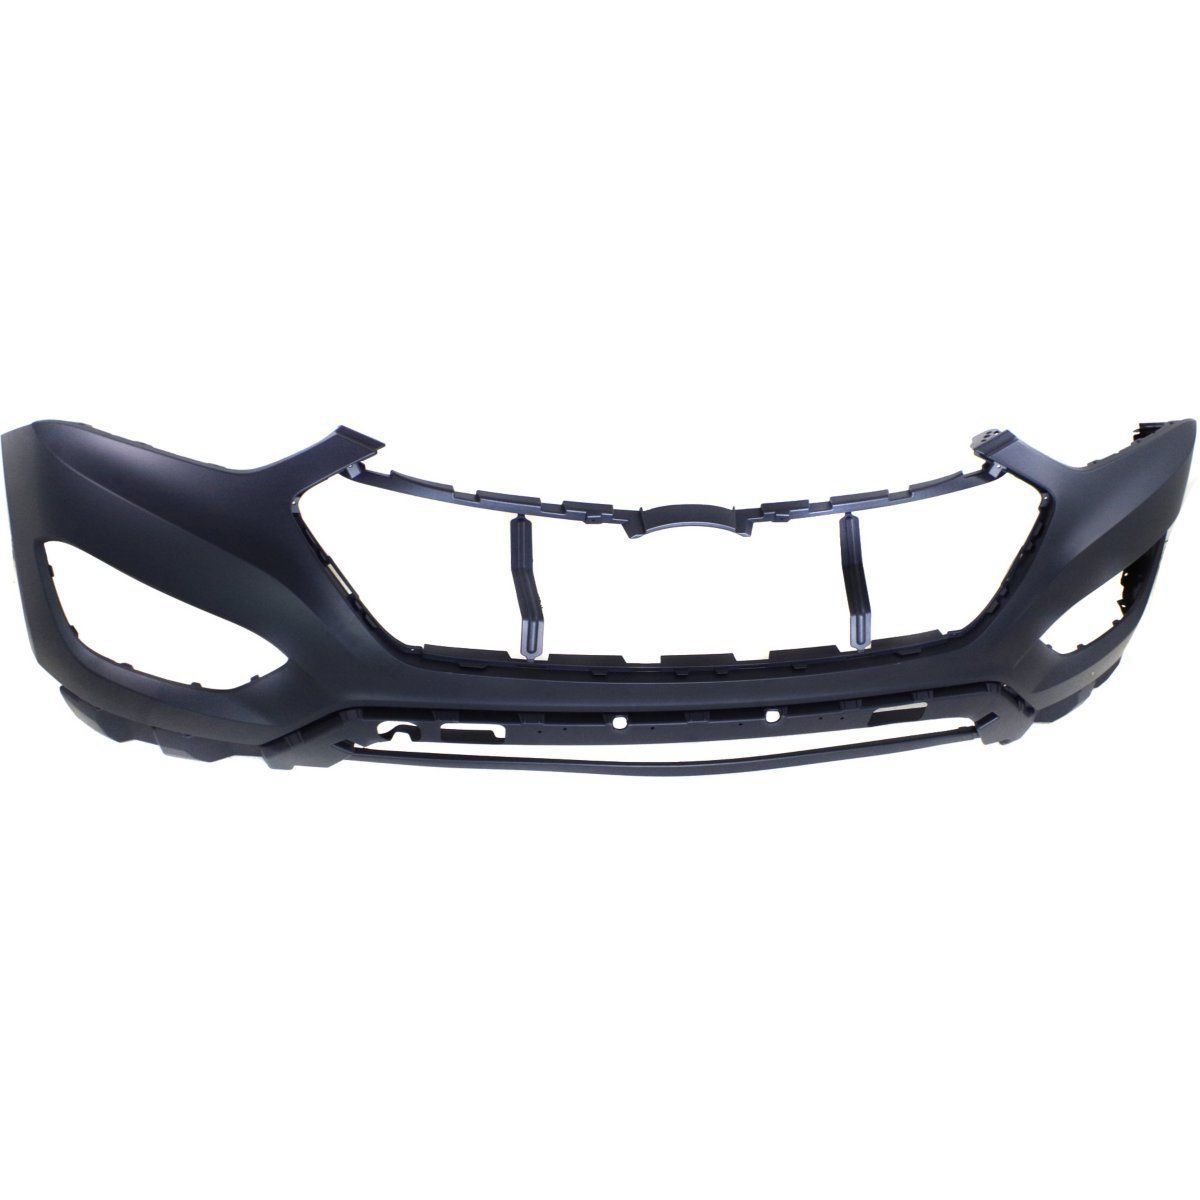 2013-2016 HYUNDAI SANTA FE Front Bumper Cover GLS|LIMITED Painted to Match